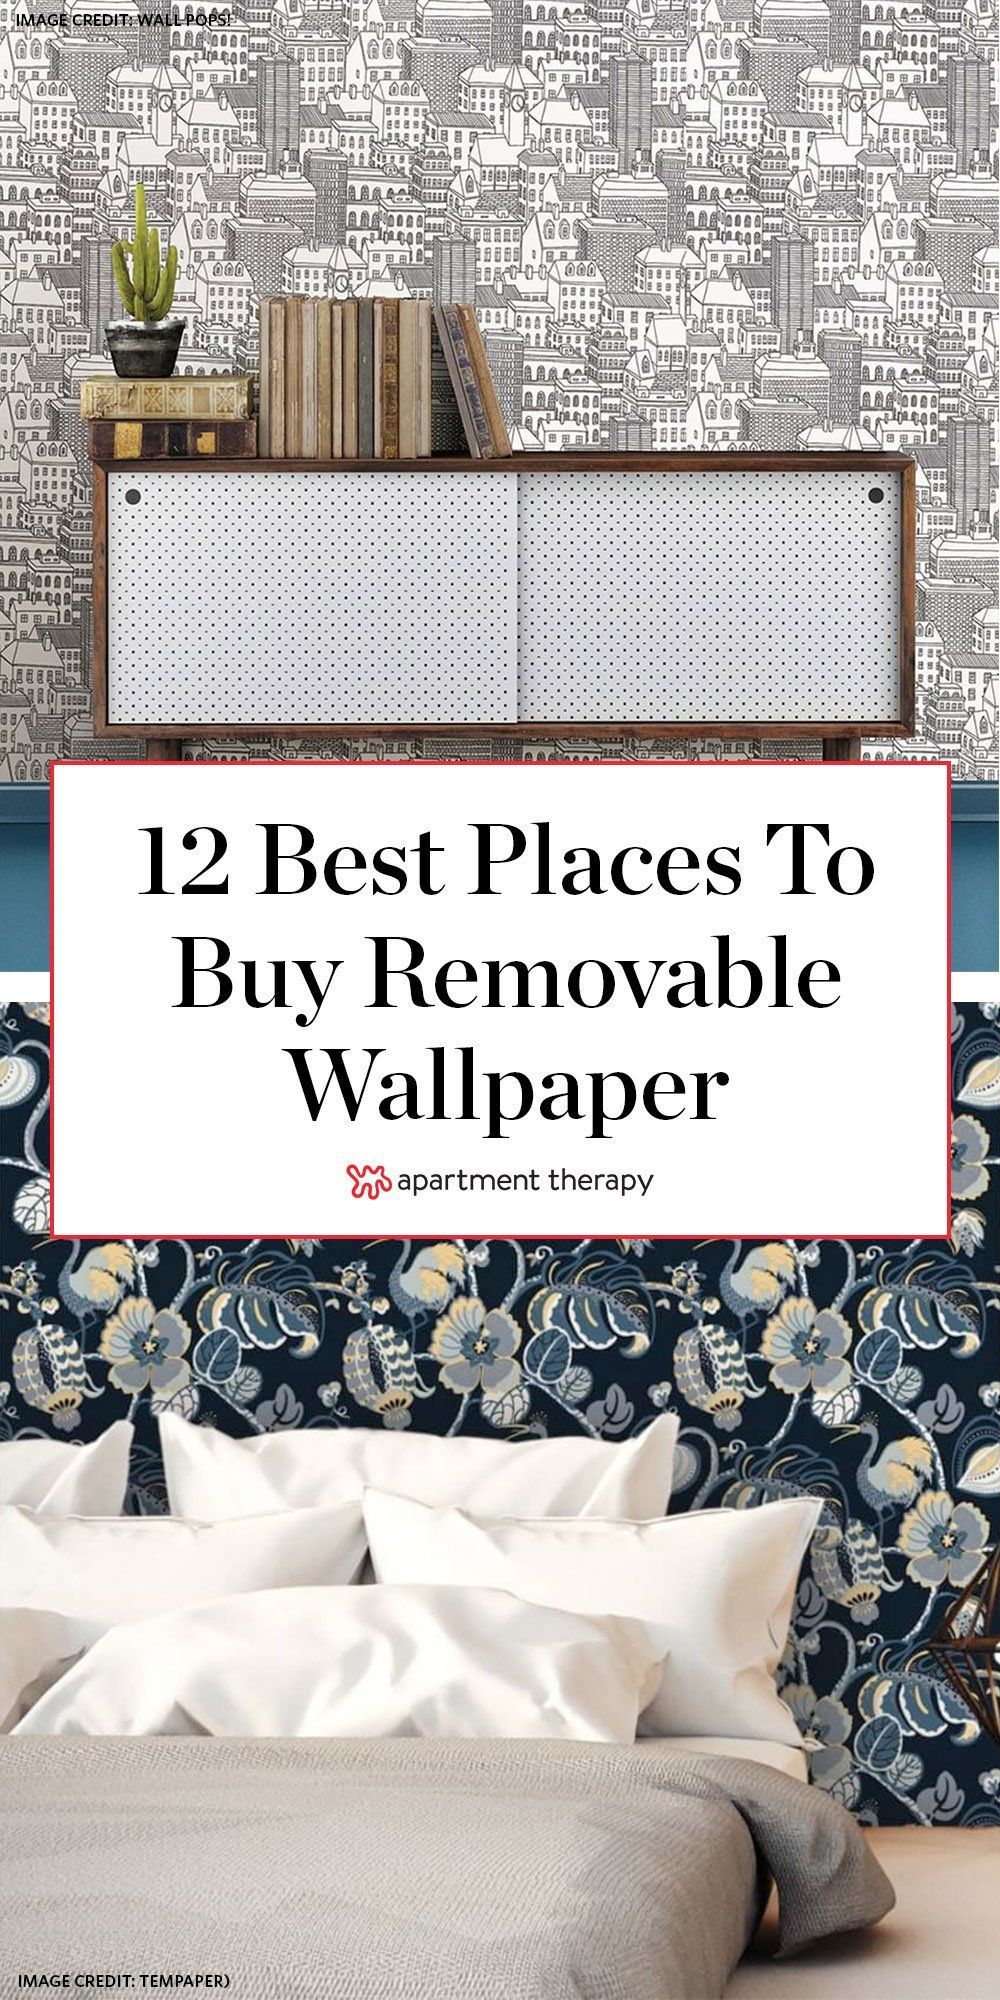 15 Removable Wallpaper Companies To Know In 2020 Removable Wallpaper For Renters Wallpaper Companies Home Decor